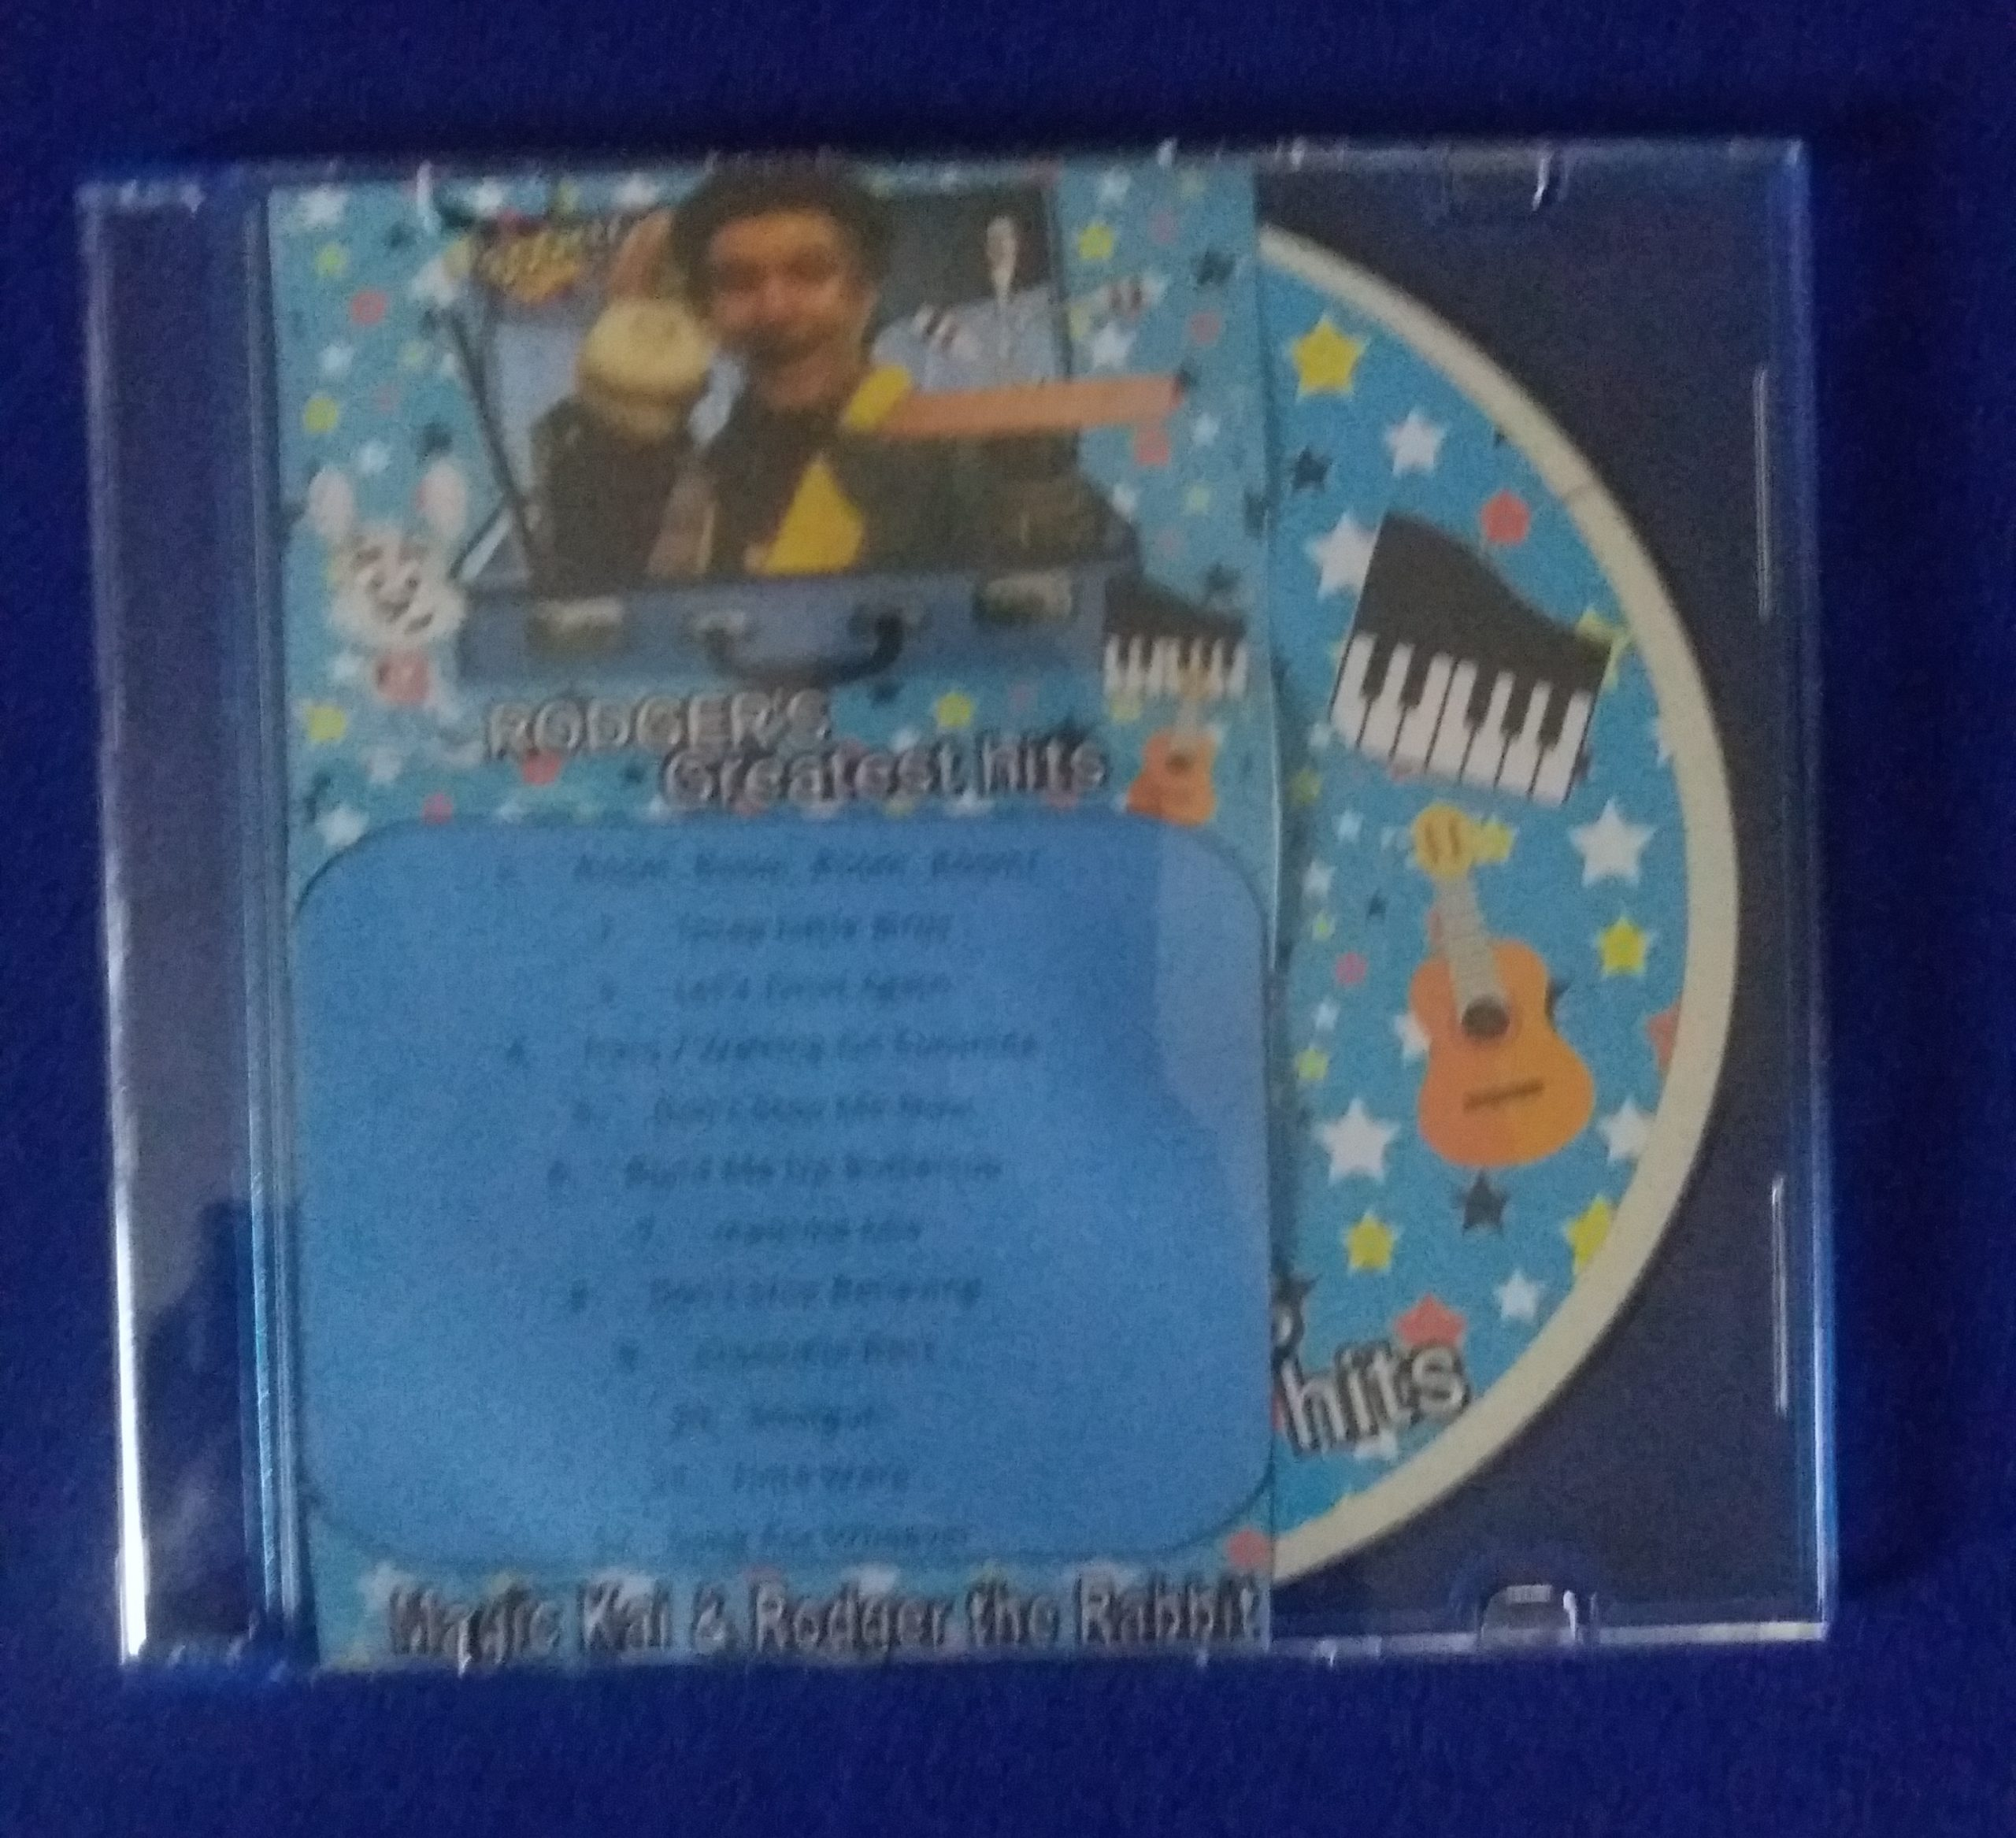 Rodger's Greatest Hits Cd